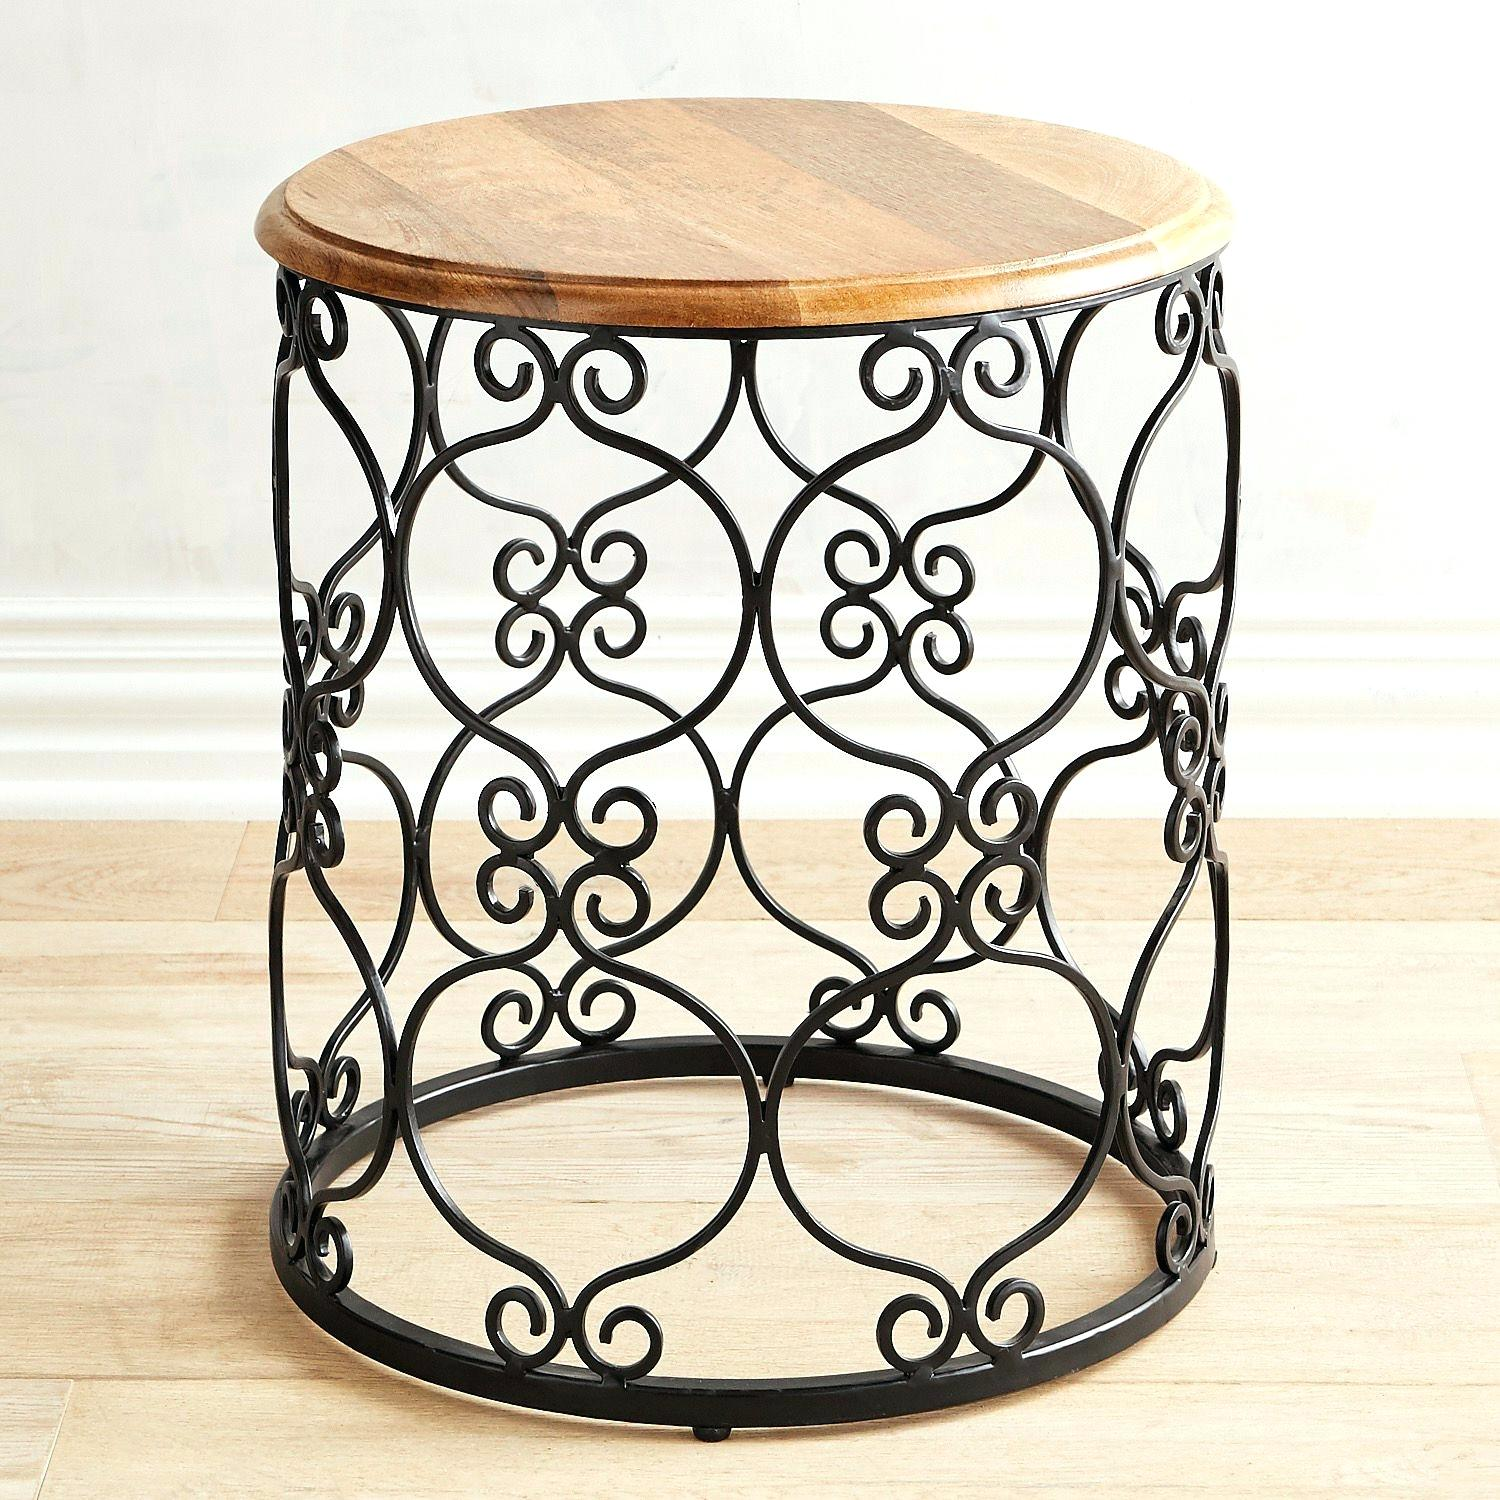 turquoise accent tables drawer cupboard table orchid liked home save this item open gallery metal fretwork threshold gold small retro sofa olympia furniture nautical bedroom ideas